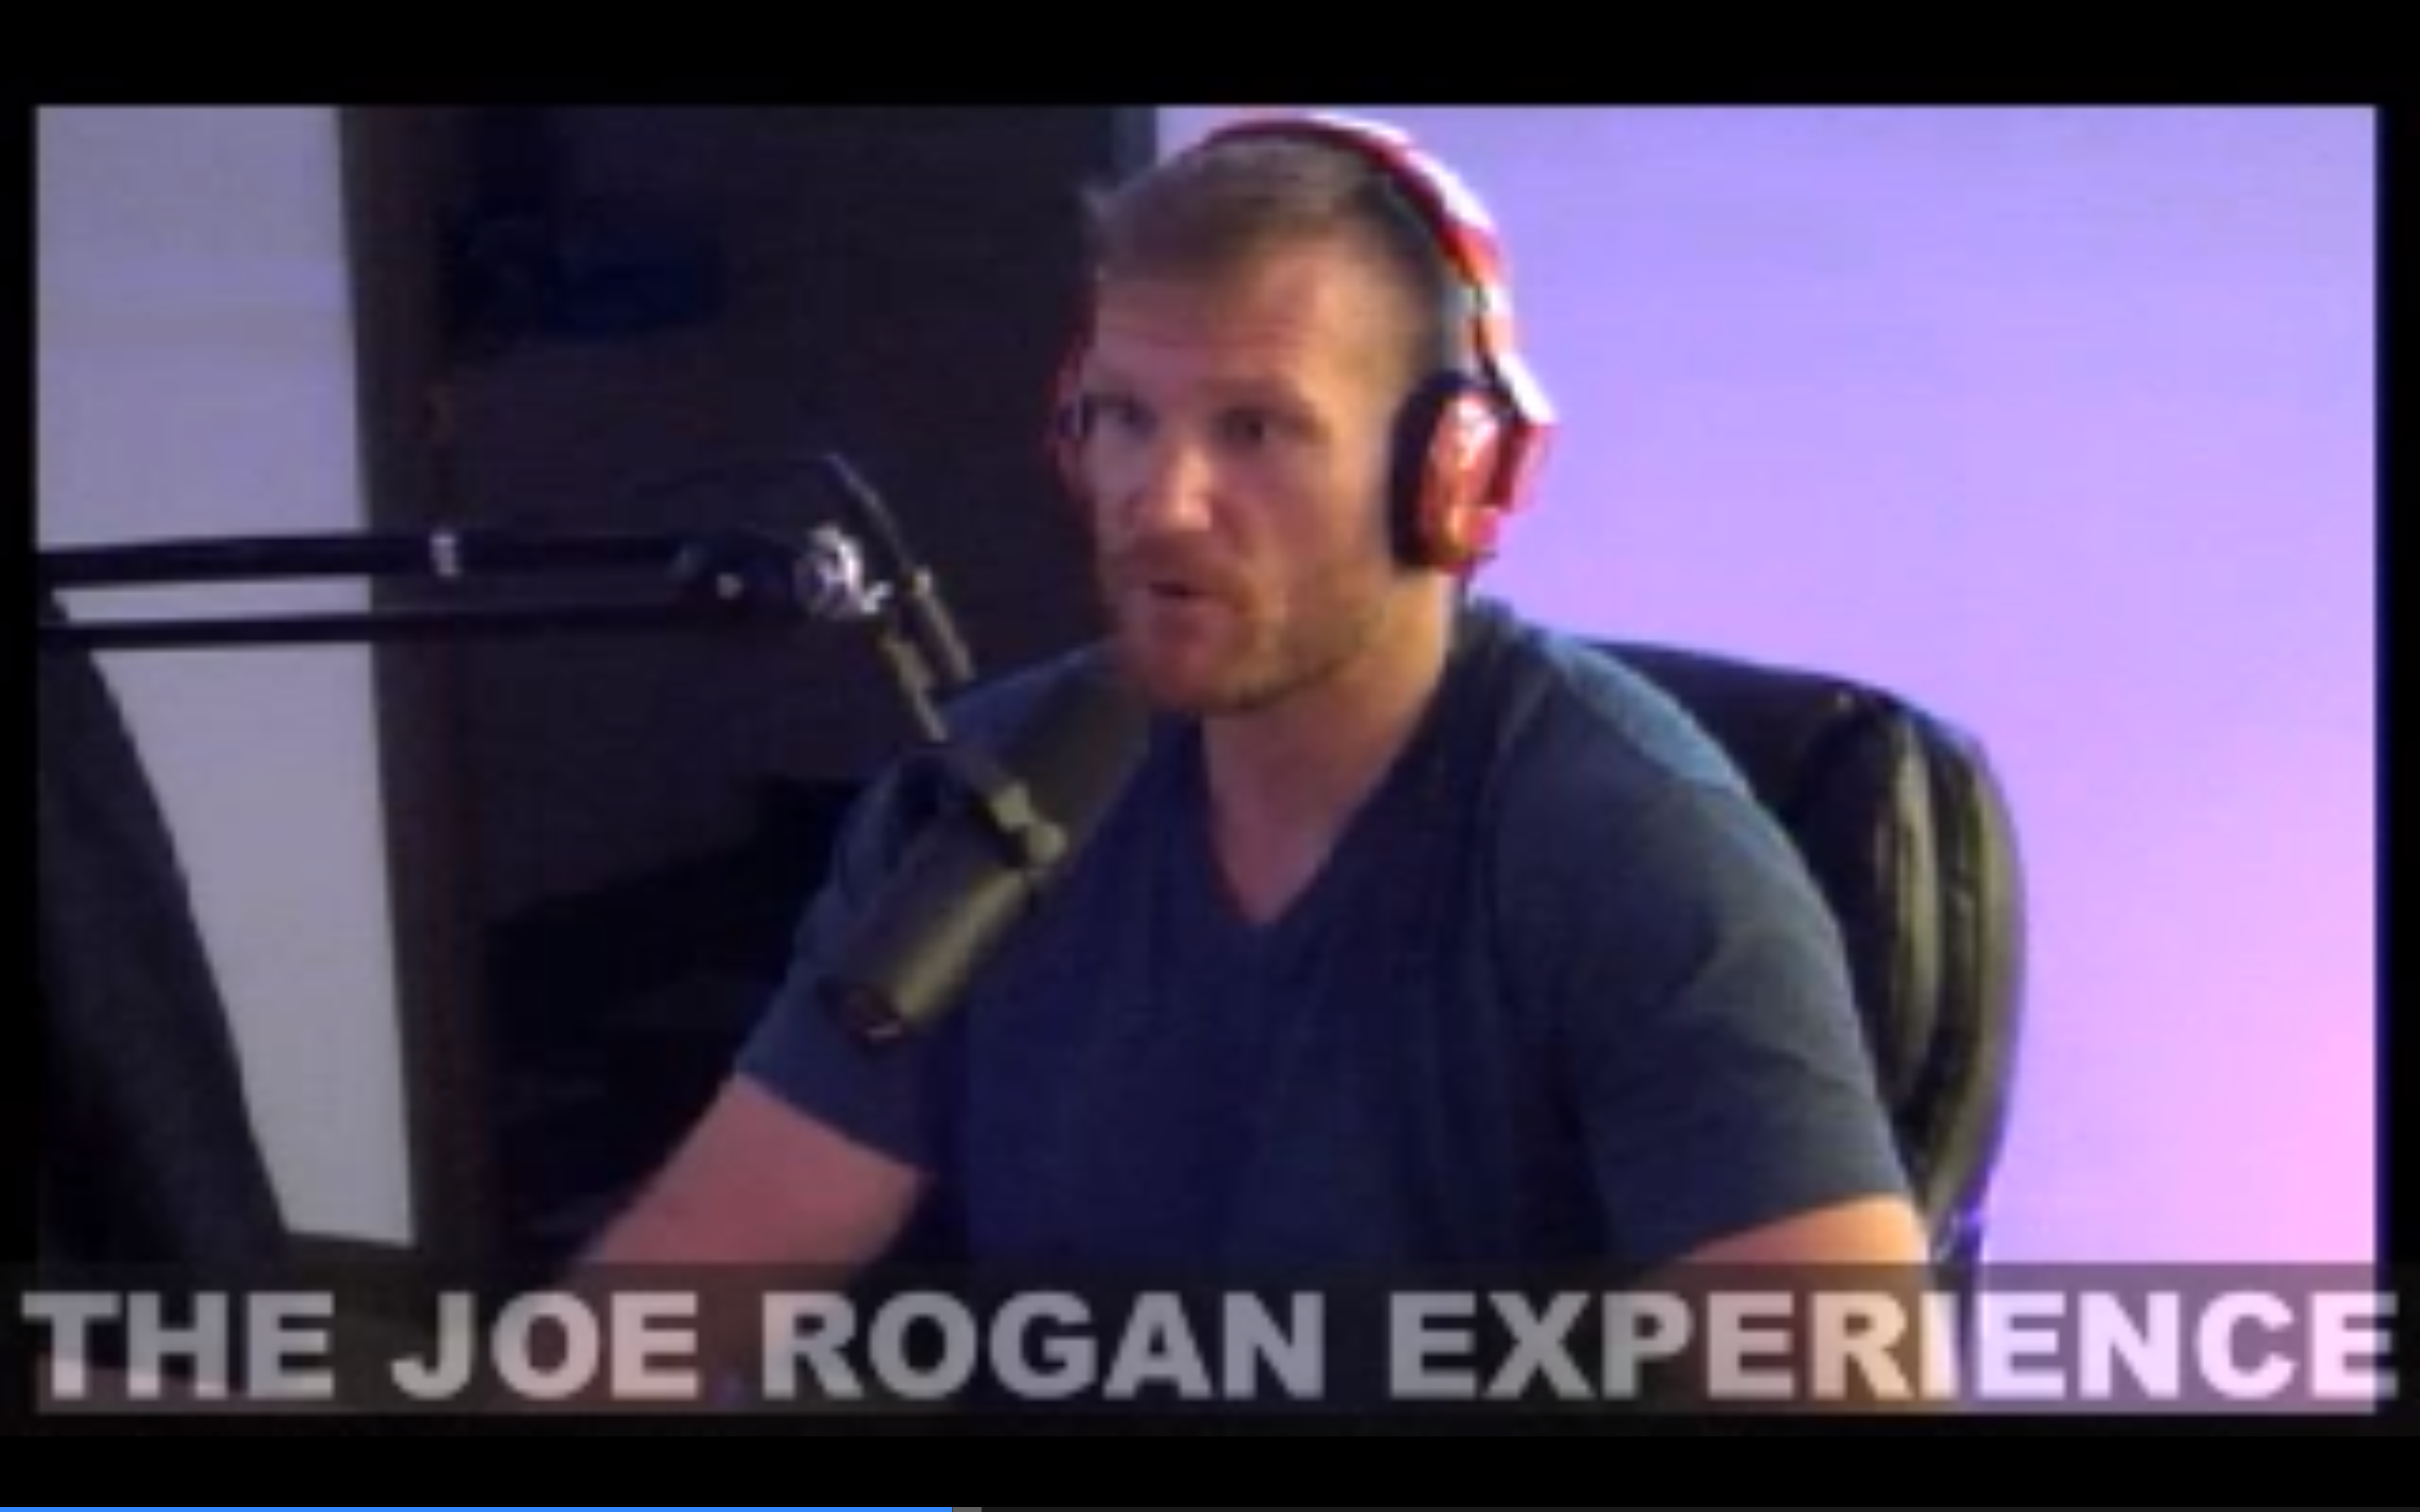 The Joe Rogan Experience #302 - Josh Barnett, Brian Redban